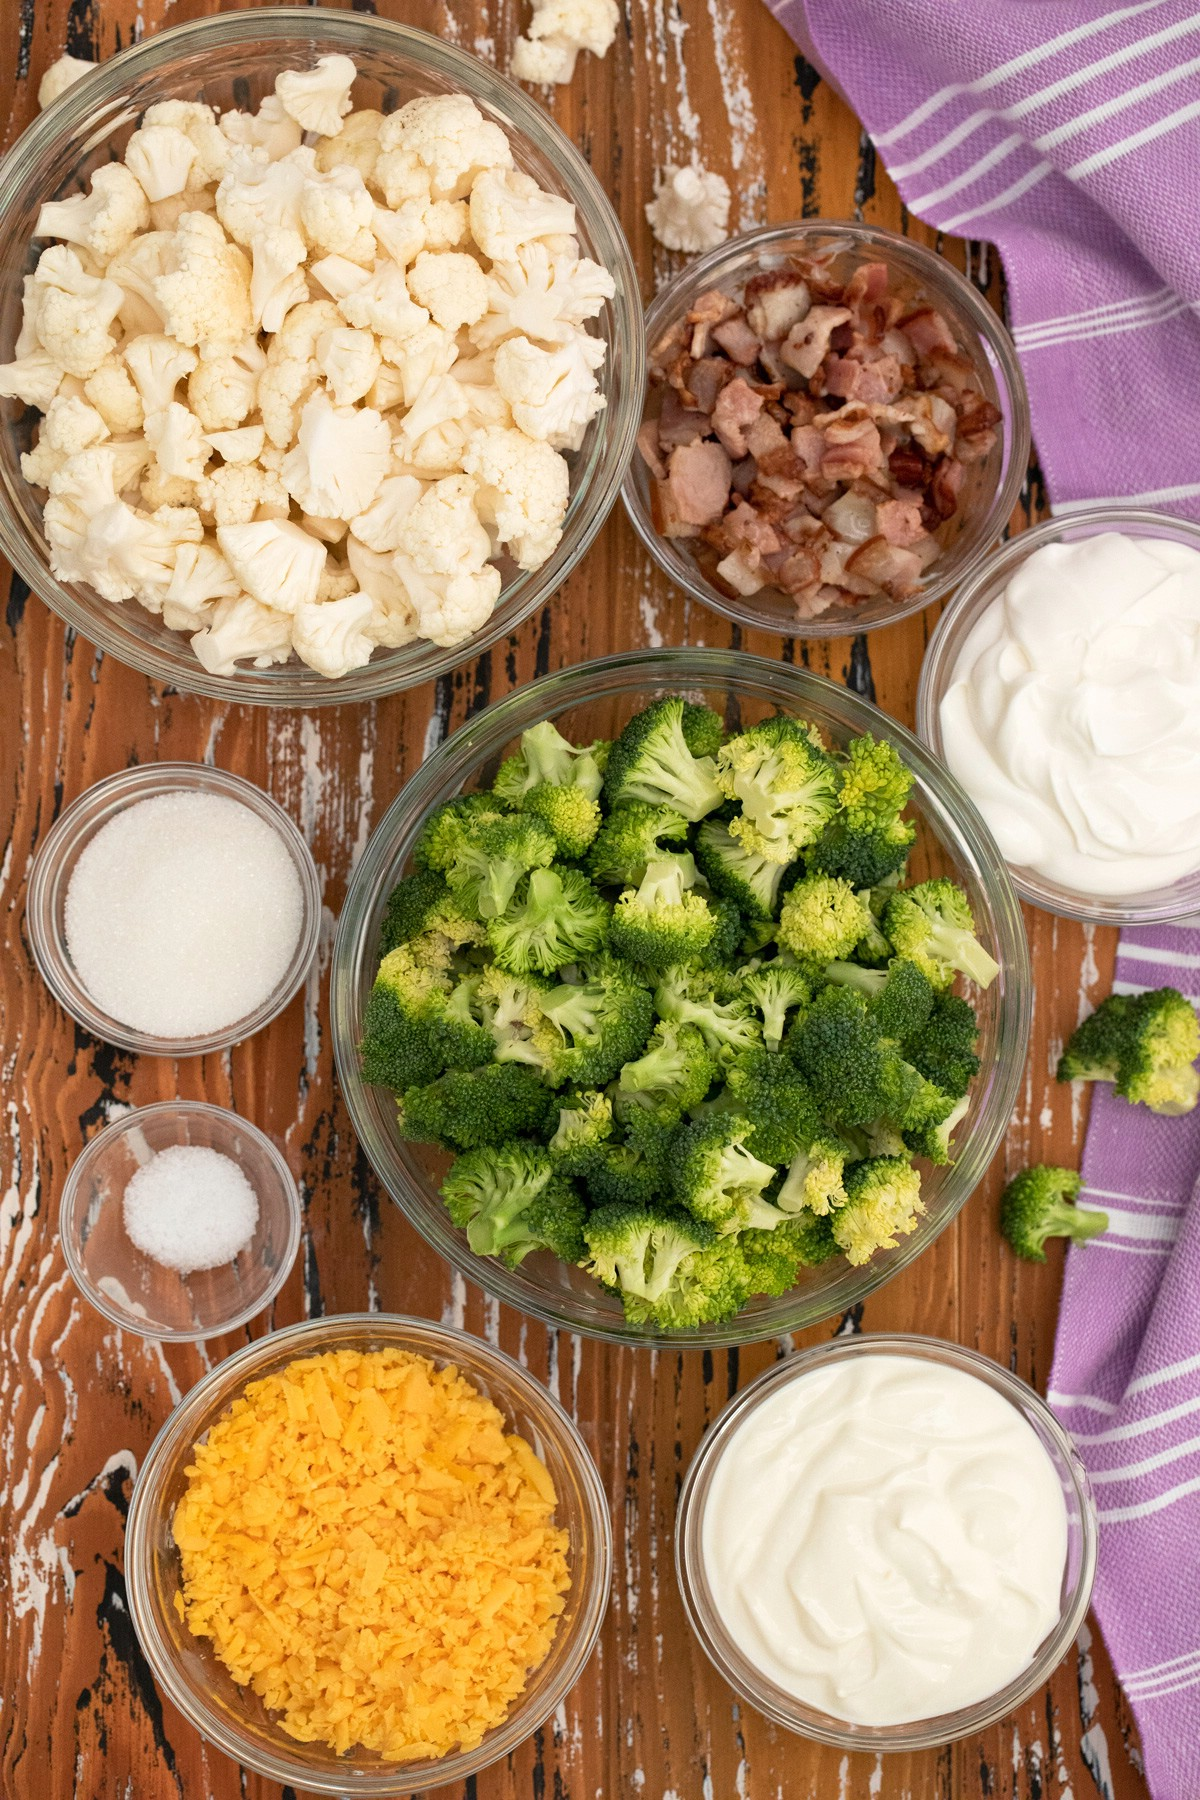 Ingredients for cauliflower and broccoli salad in bowls on table